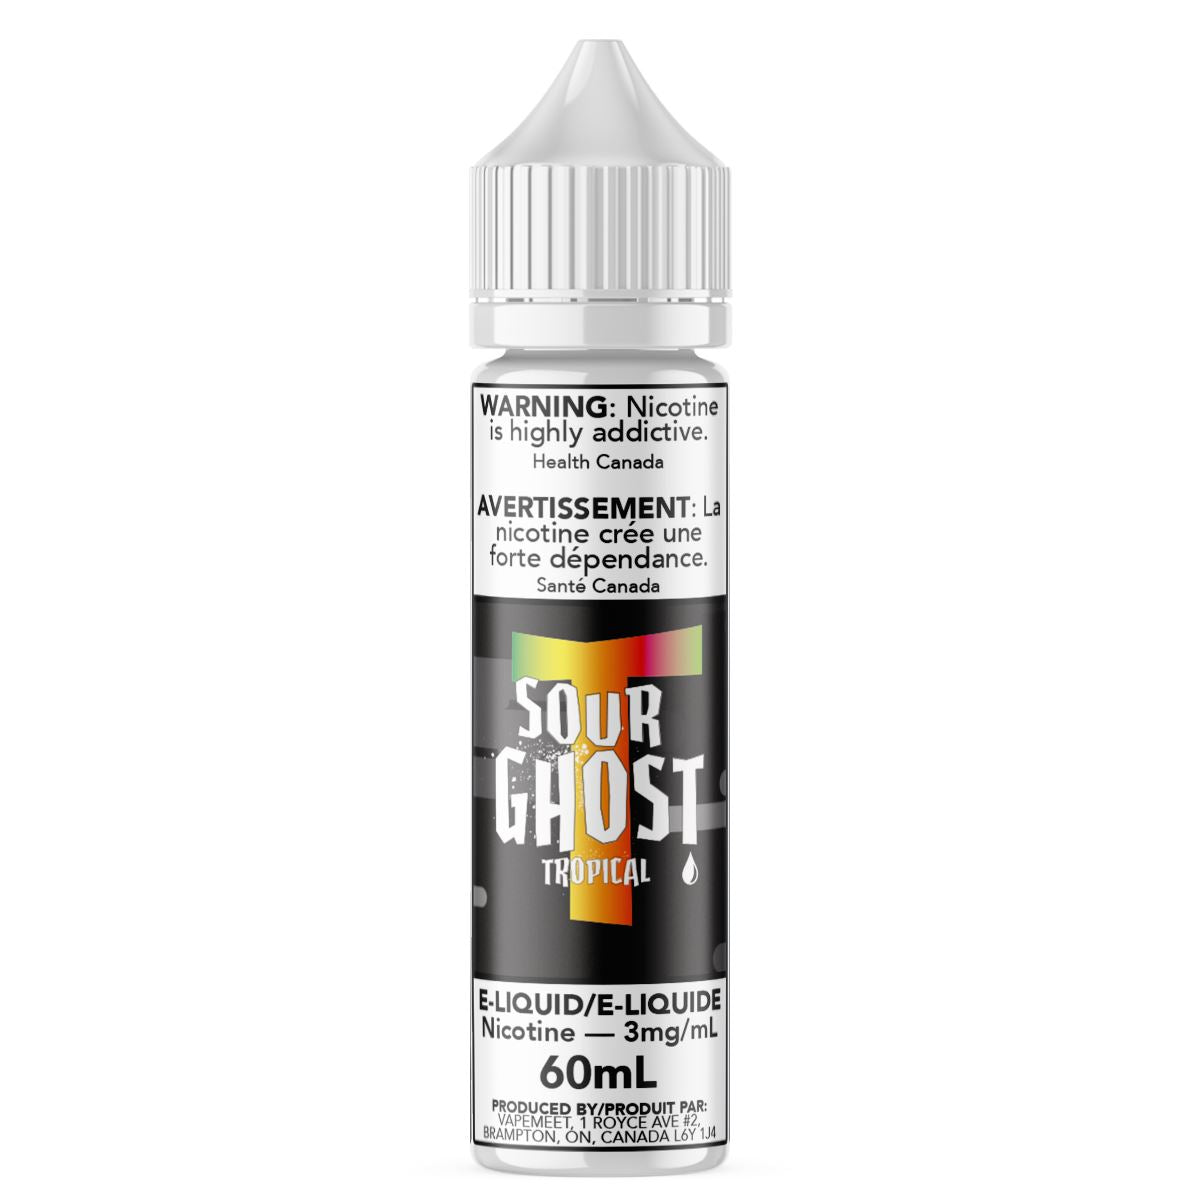 Ghosted - Sour Ghost Tropical E-Liquid Ghosted 60mL 0 mg/mL